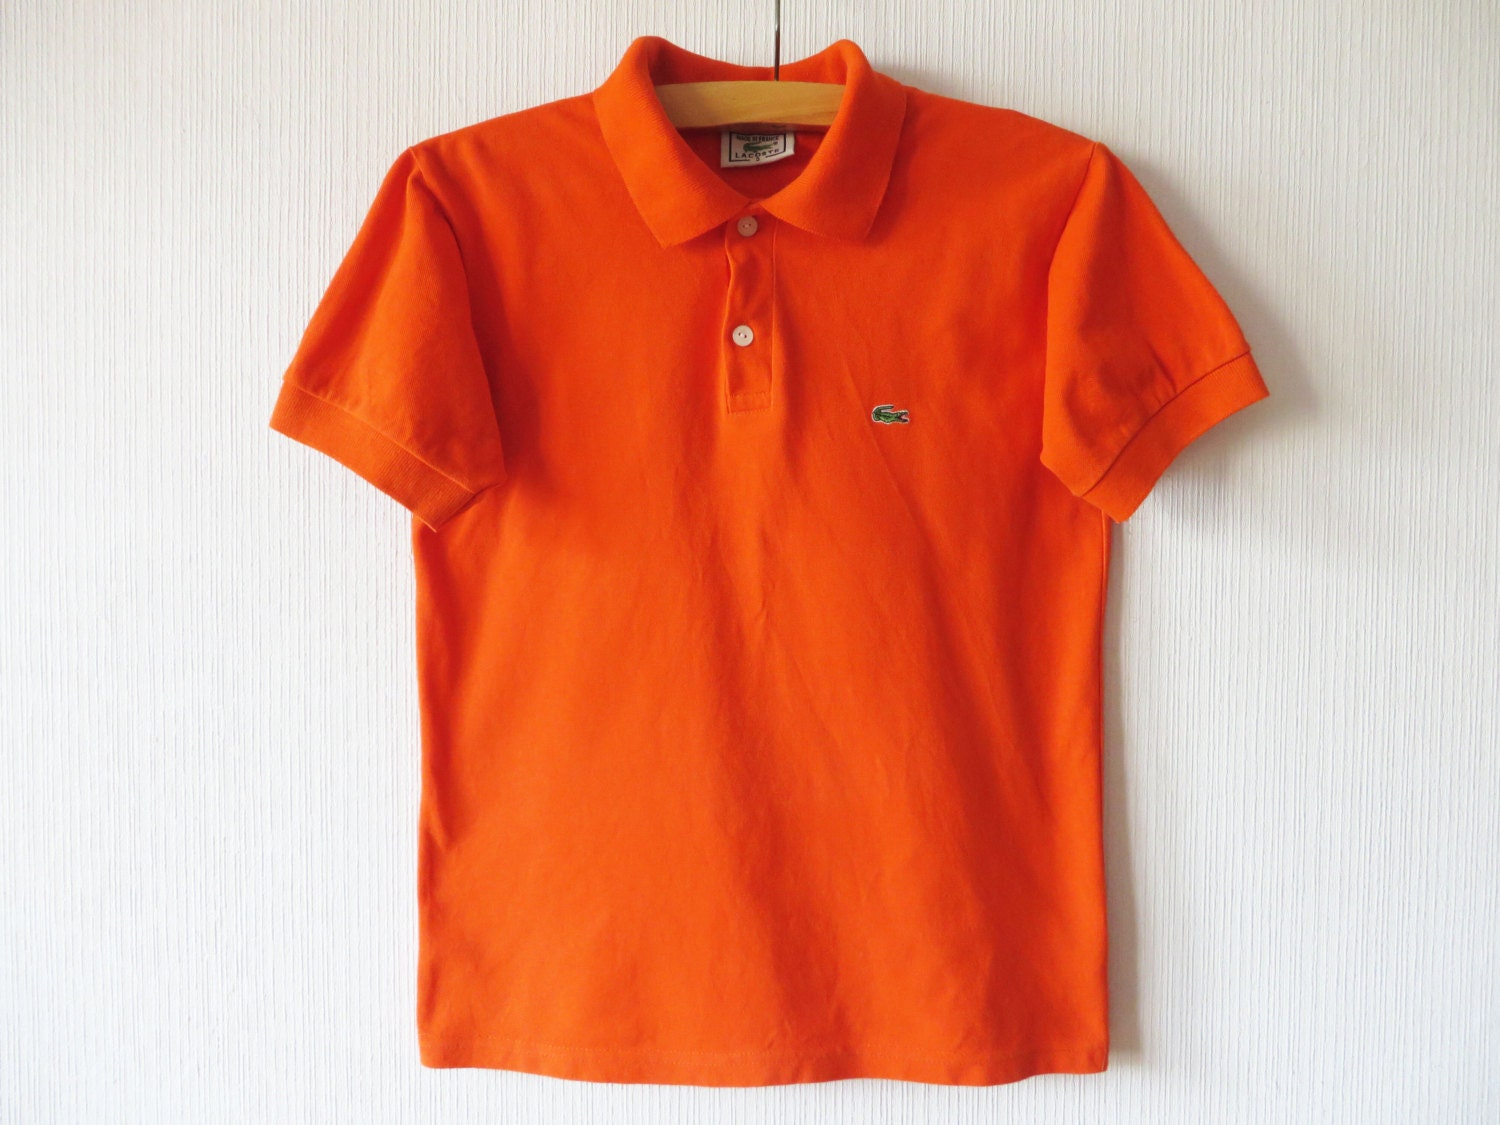 6c737c11 Orange Lacoste Polo Shirt Short Sleeve Summer Chemise Polo | Etsy